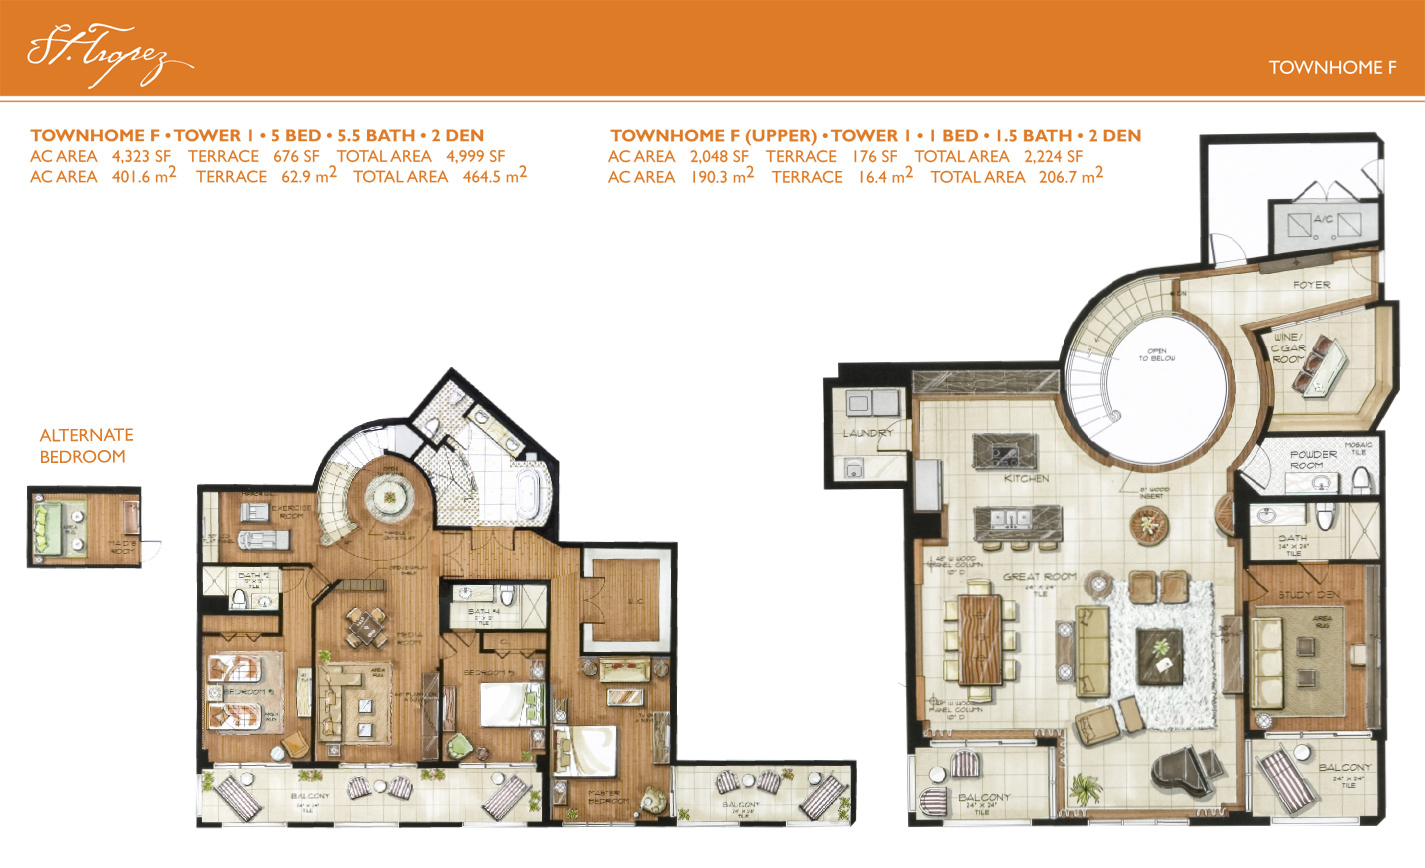 st tropez townhome floorplans On townhome floor plans